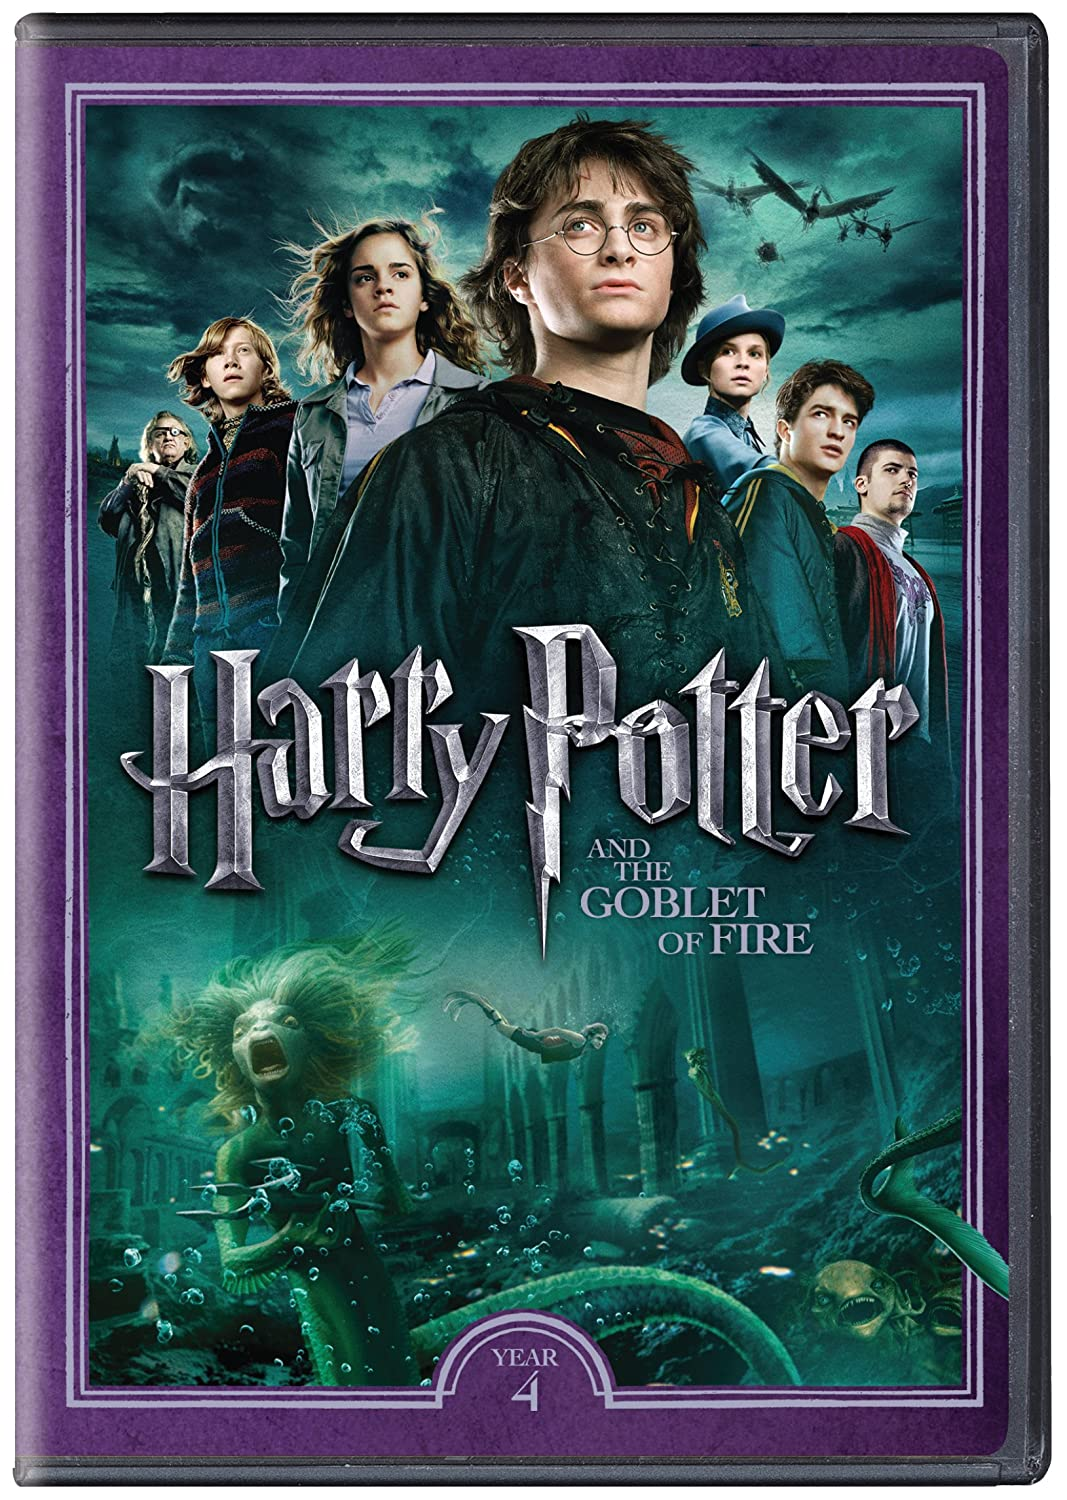 Harry Potter And The Goblet Of Fire 2005 Year 4 Amazon In Daniel Radcliffe Emma Watson Rupert Grint Mike Newell Daniel Radcliffe Emma Watson Movies Tv Shows